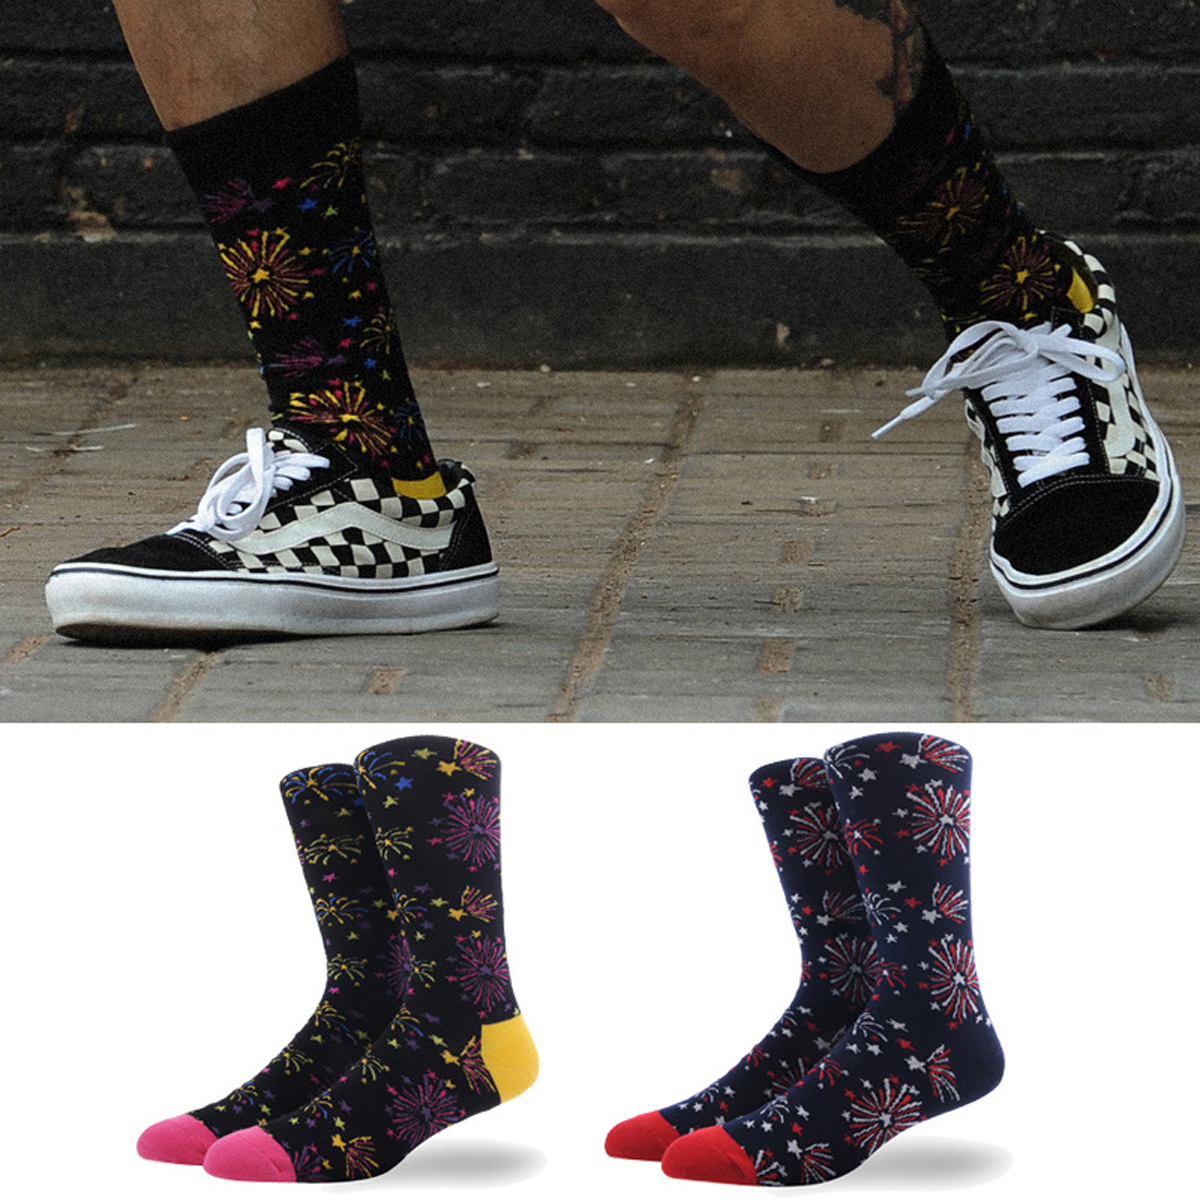 Straightforward Creative New Men Socks Fireworks Novelty Happy Socks Cotton Harajuku Funny Hip Hop Socks Mens Weed Socks Fast Color Men's Socks